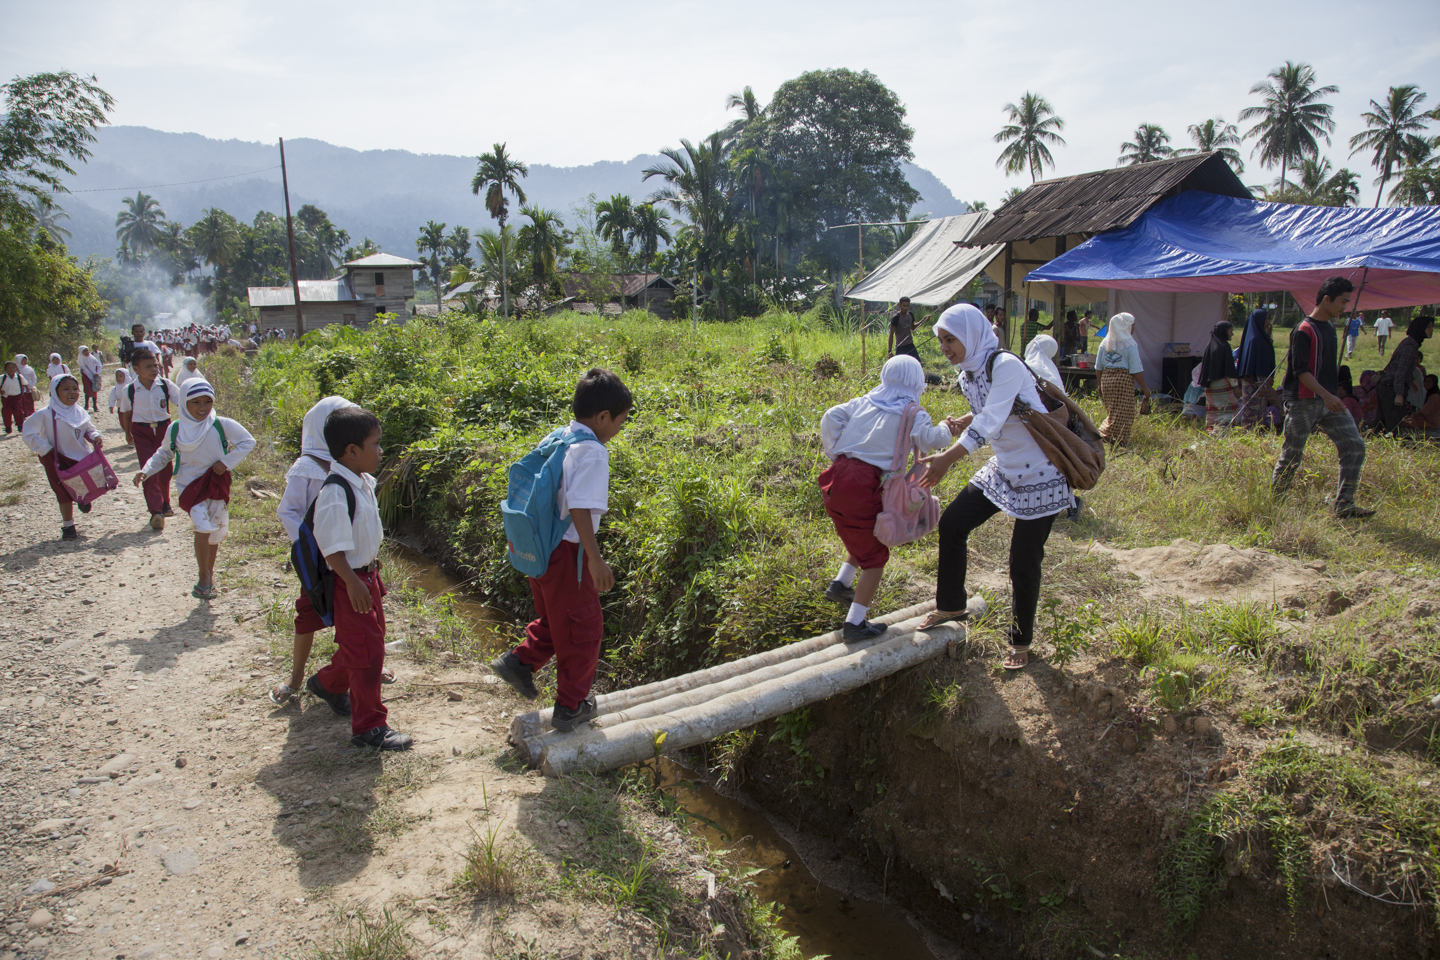 Disaster Simulation in the village of Lawe Sawah, south of Tapaktuan, Southern Aceh, Indonesia.